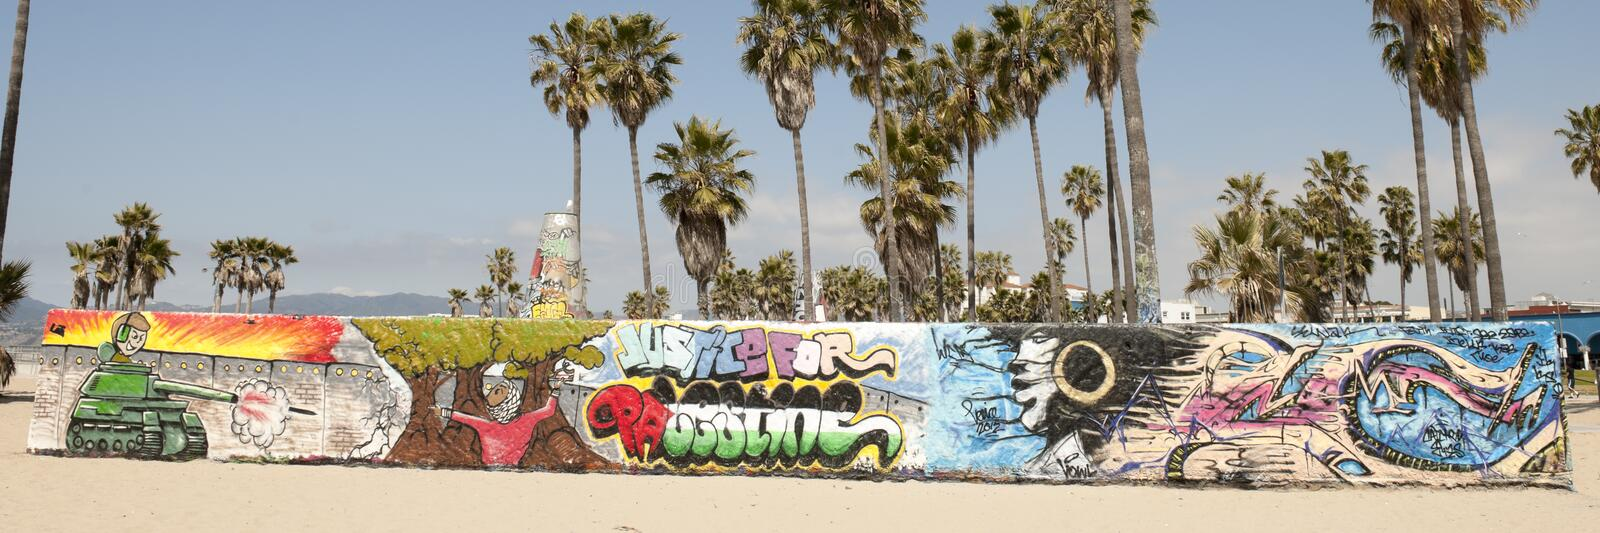 Art Walls On Venice Beach, Los Angeles Royalty Free Stock Image